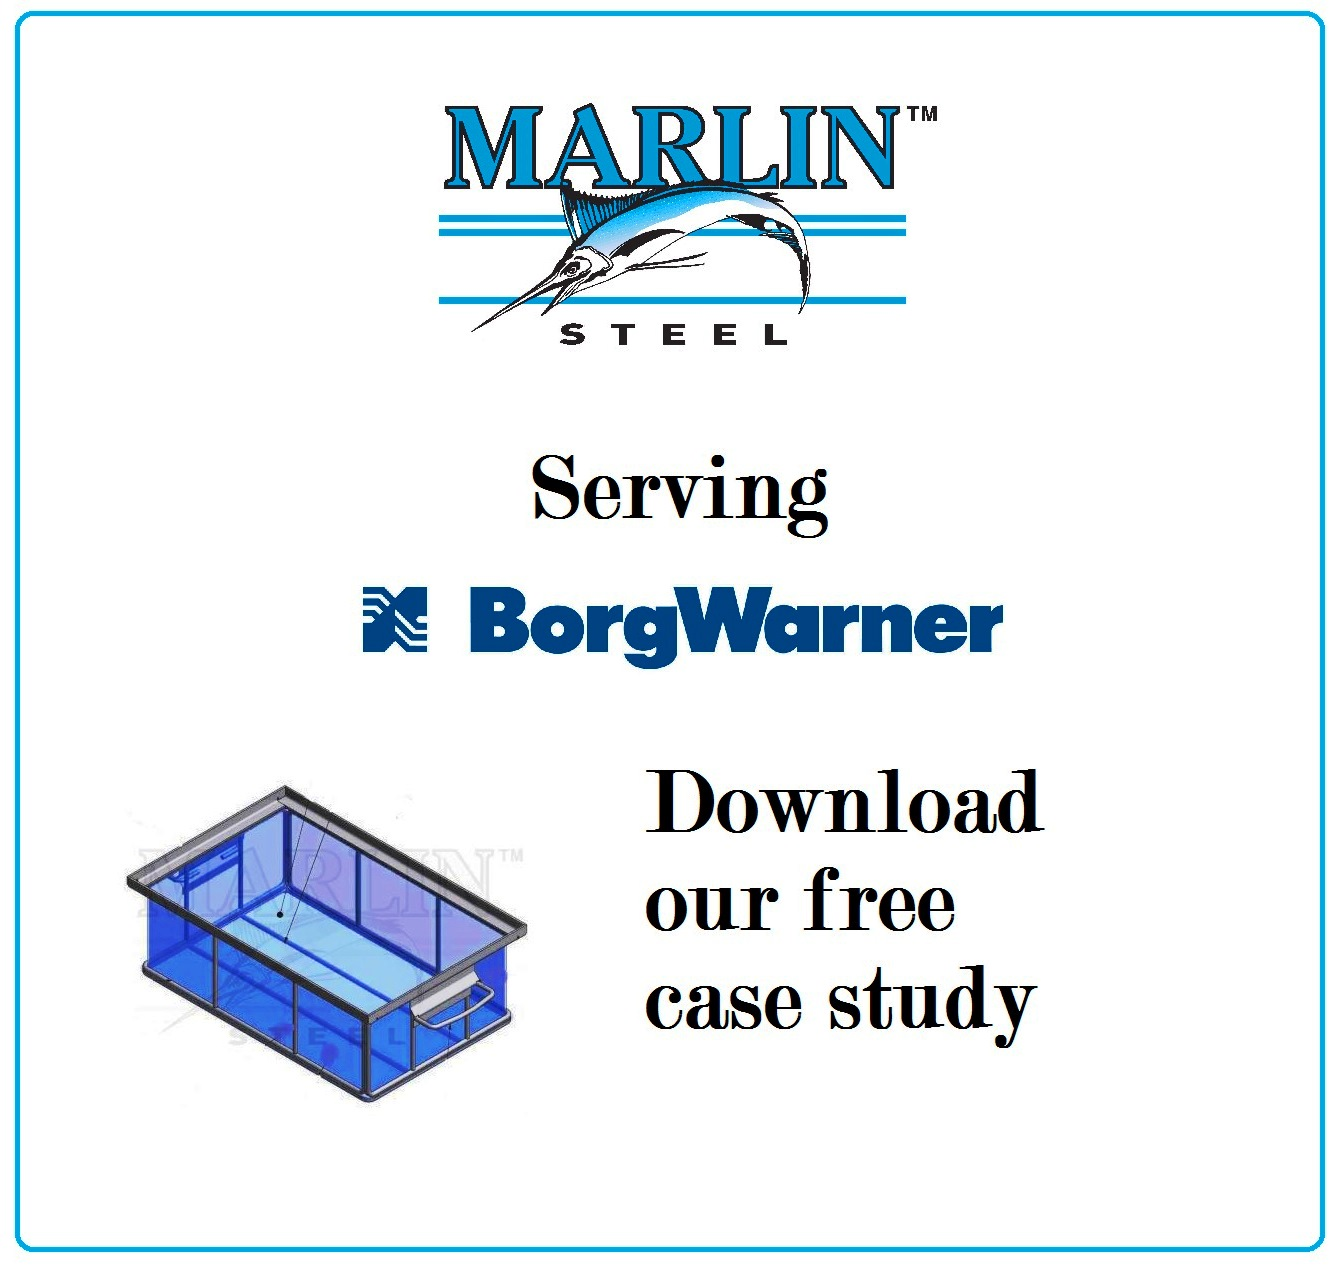 A Marlin Steel Case Study: Baskets for BorgWarner